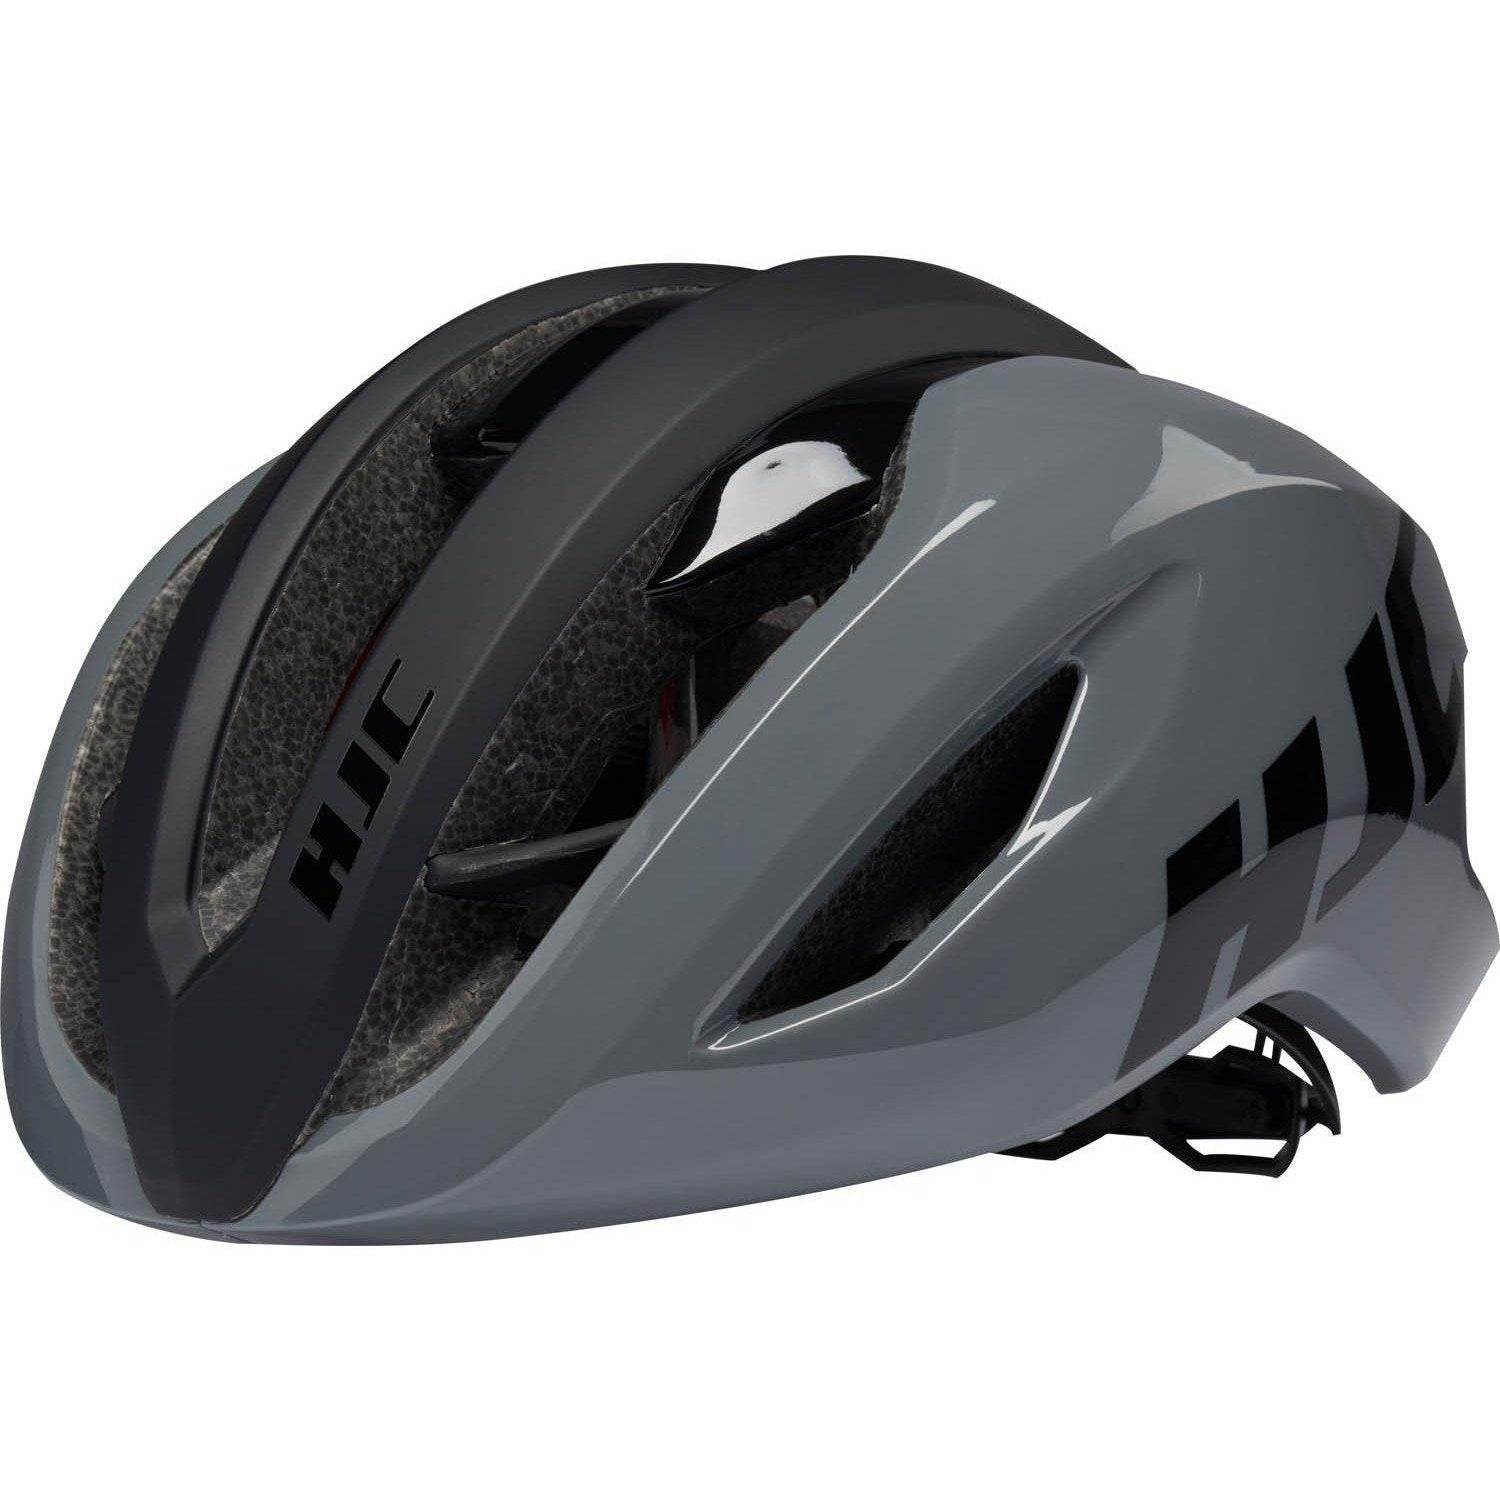 HJC-HJC Valeco Road Cycling Helmet-Matt Grey/Black-S-HJC81202401-saddleback-elite-performance-cycling